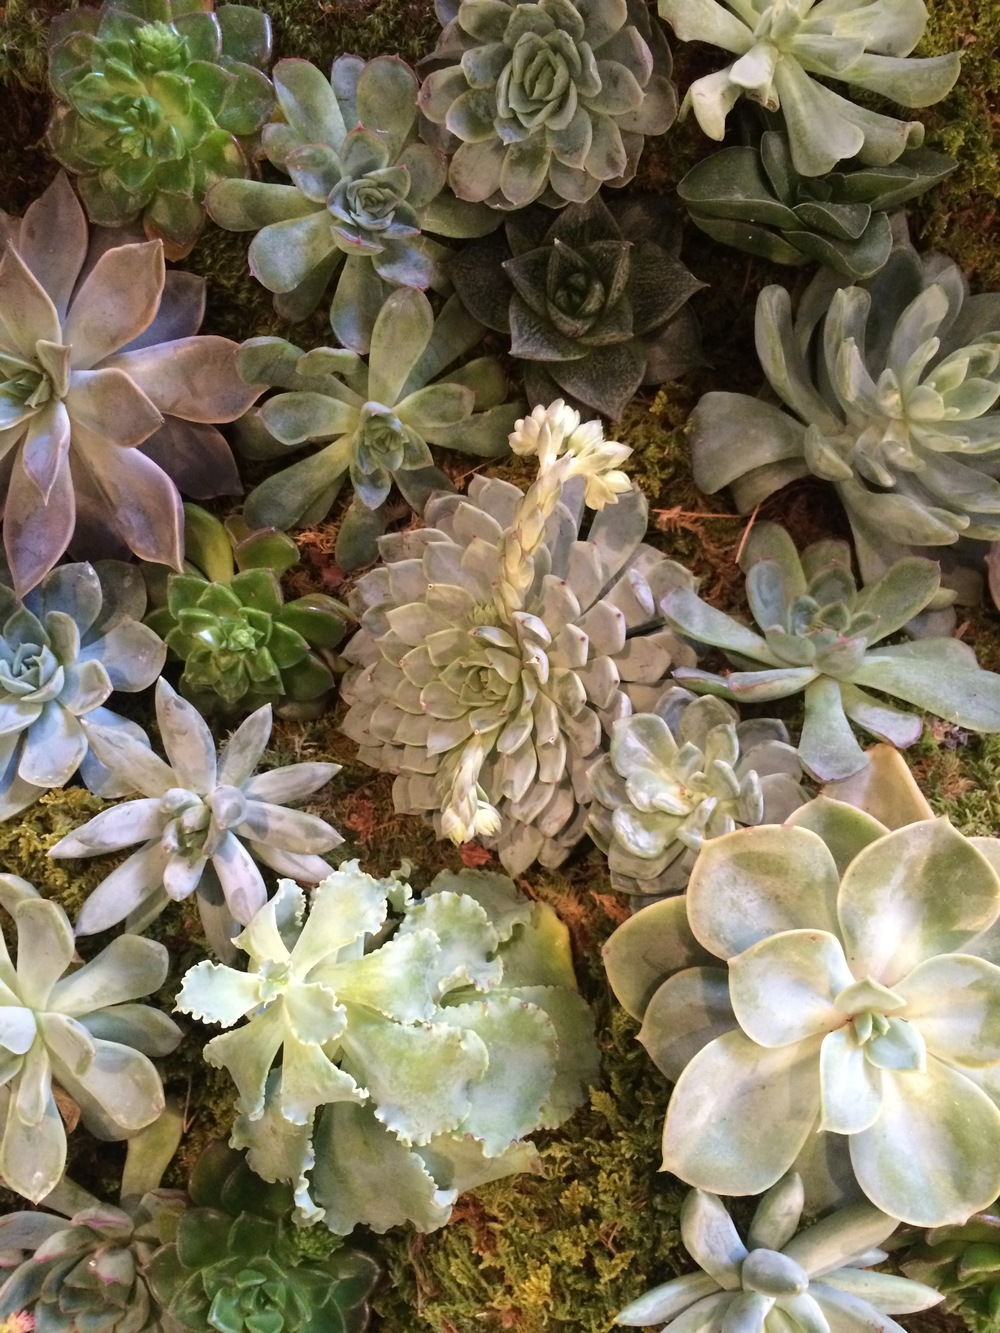 Pale plum and silver echeveria on their moss bed.